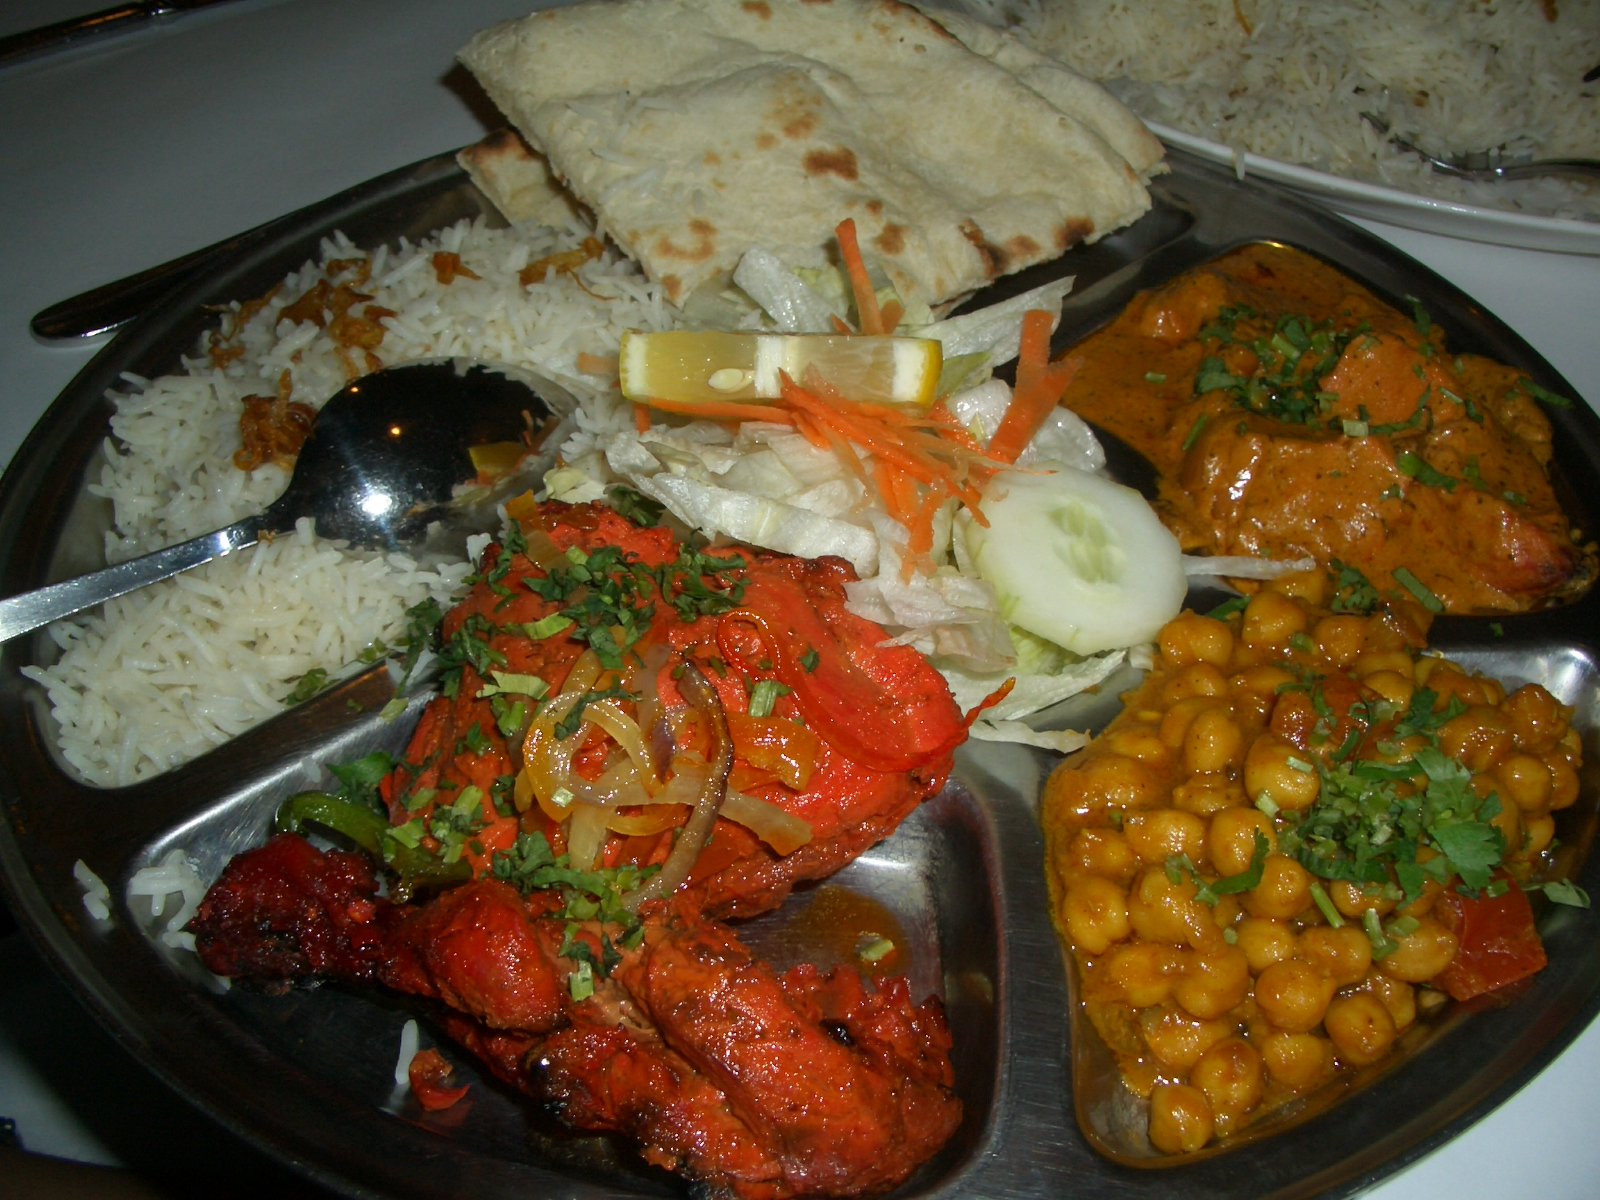 Enjoy delicious indian food at best restaurants visiting a good indian eatery can be a wholesome experience but a slight confusion can emerge as what to order on the menu will present ponderous dishes forumfinder Images